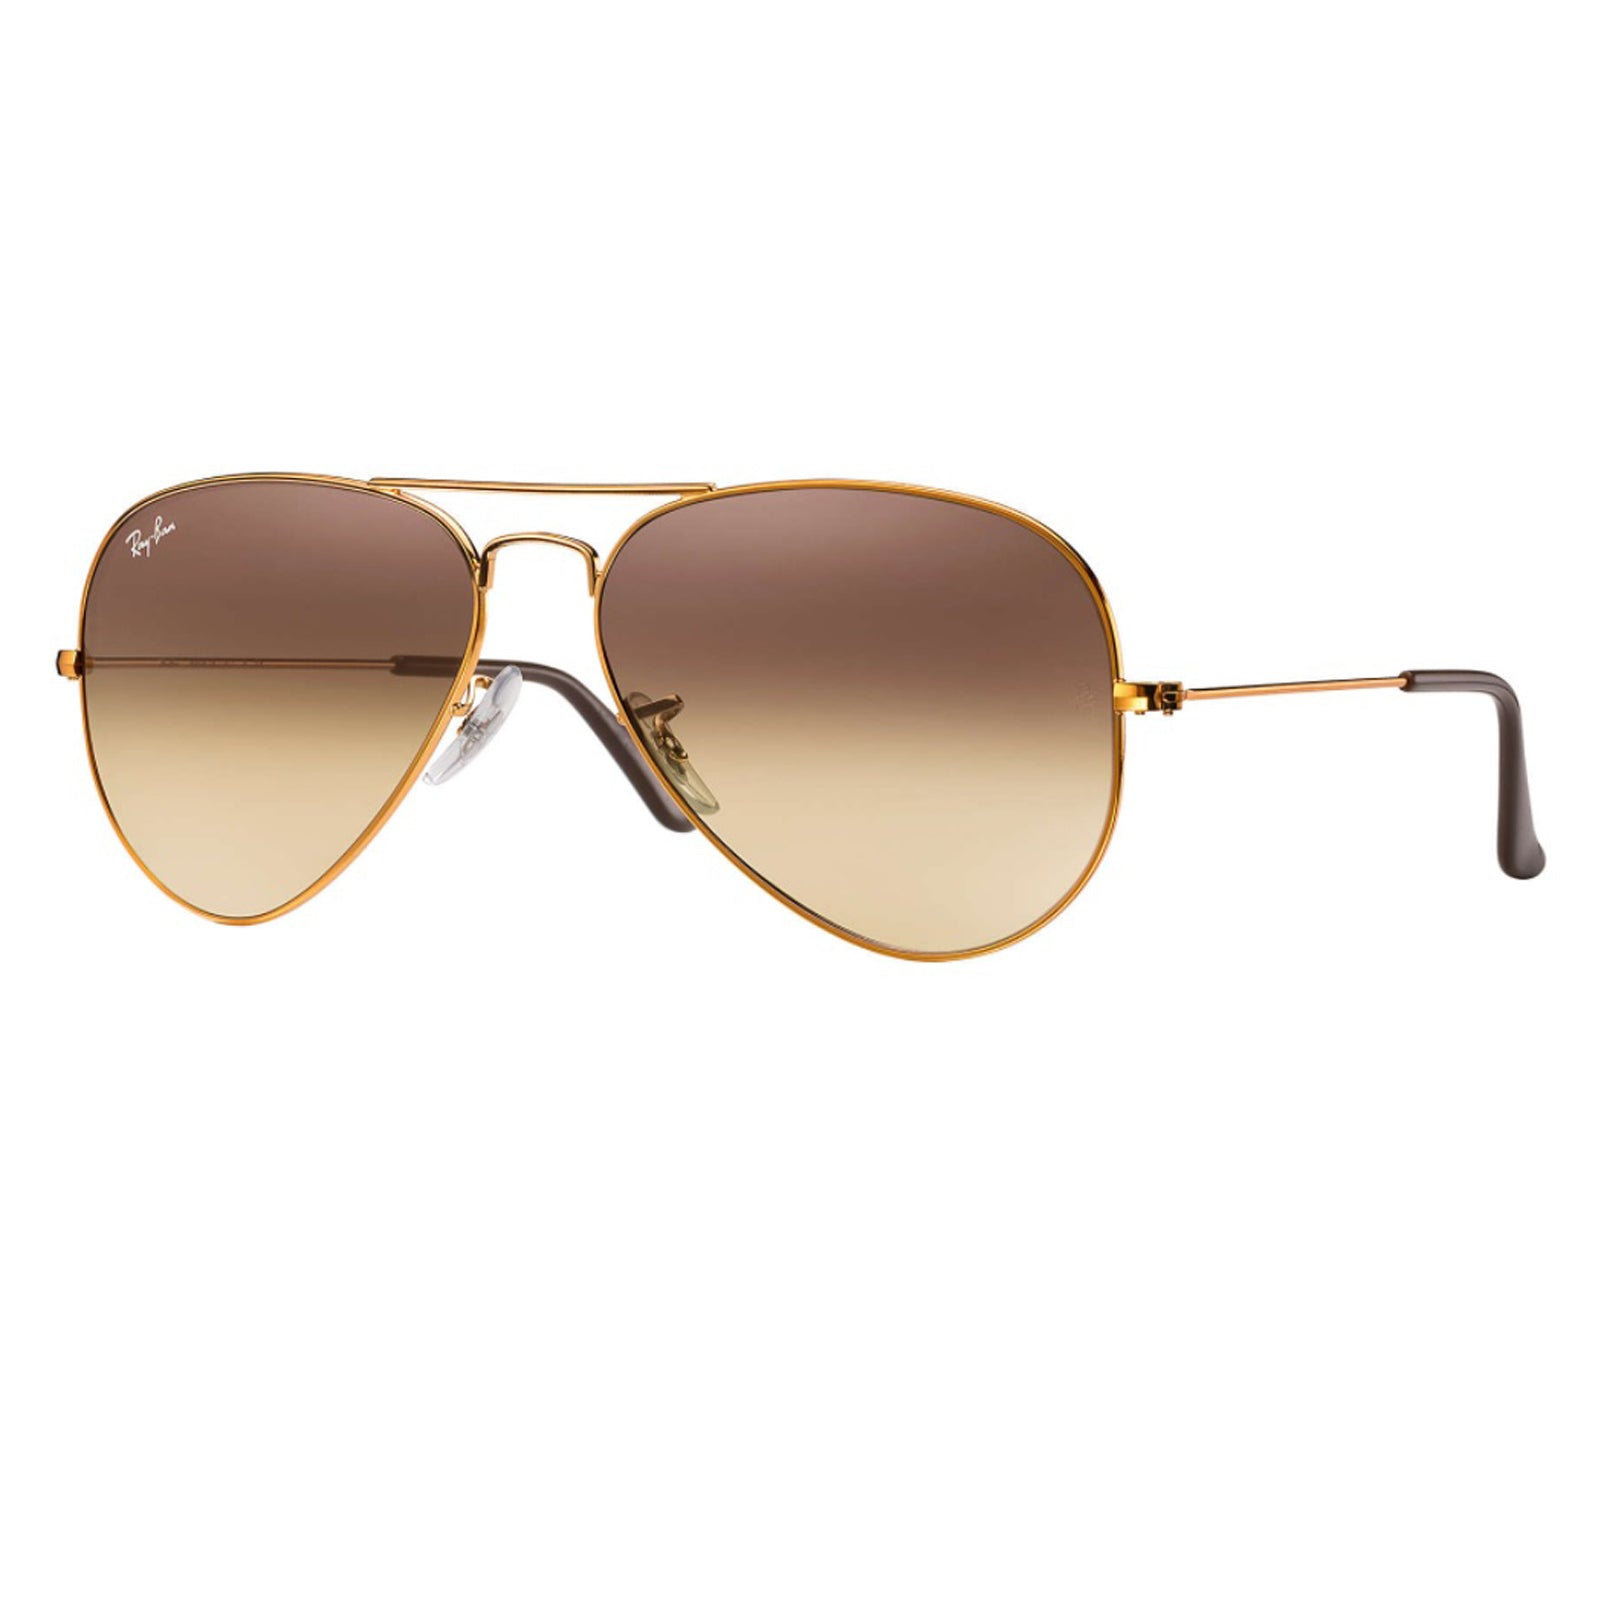 Ray-ban Aviator Rb3025 - 9001A5